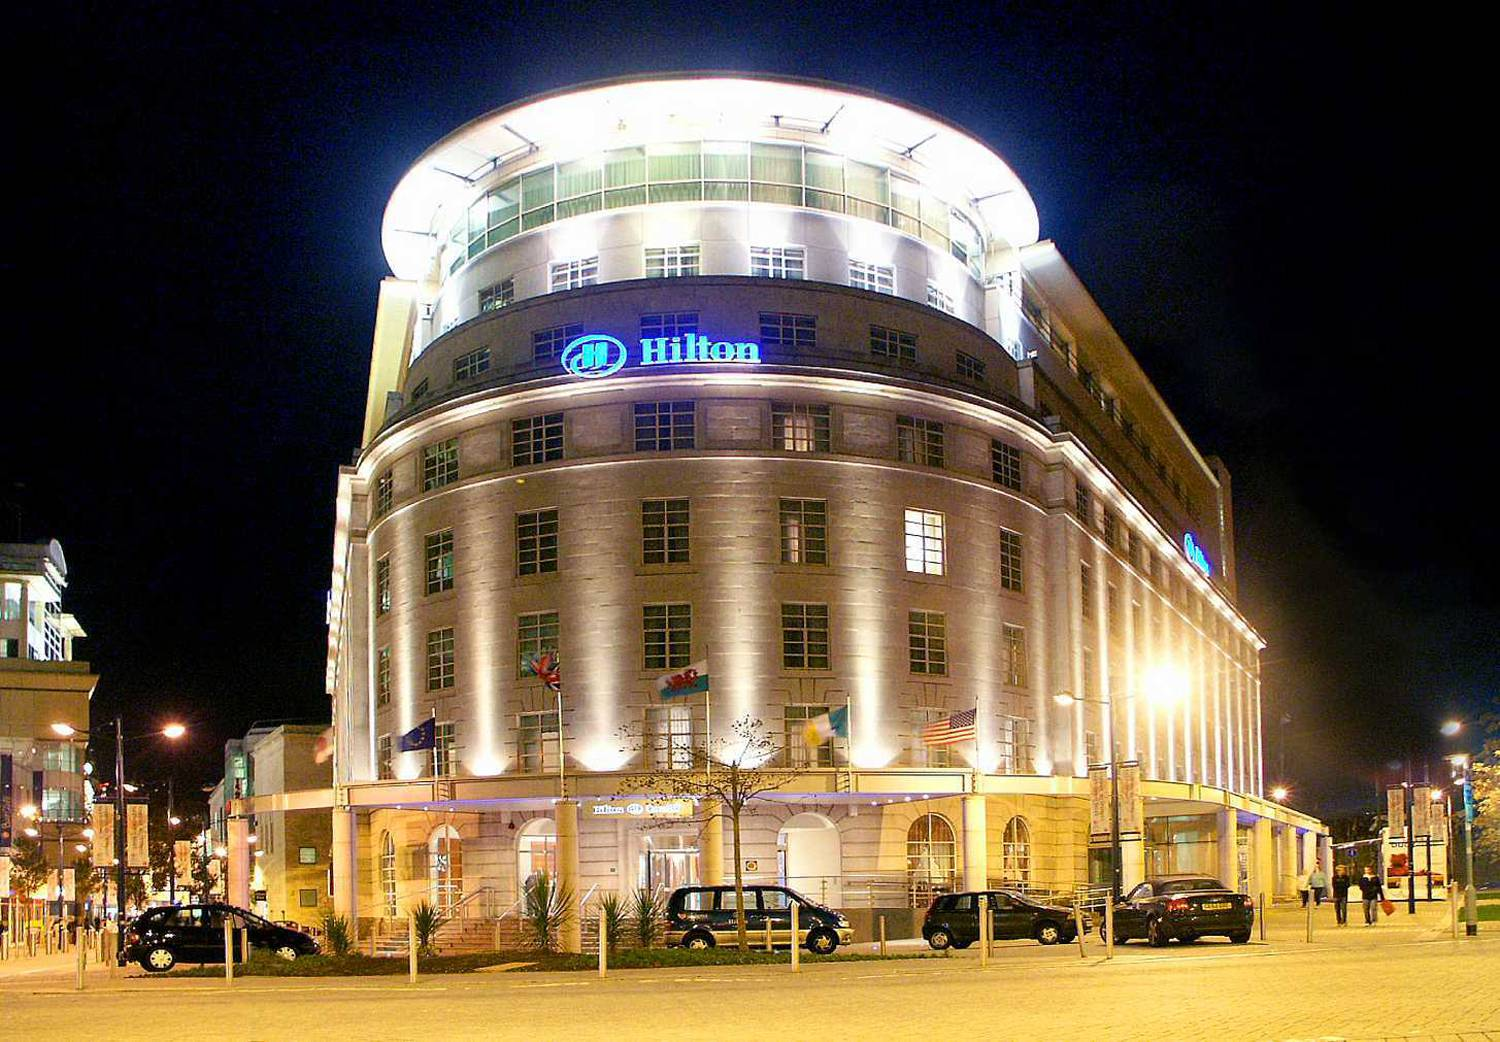 Hilton Cardiff Hotel in the Heart of Cardiff